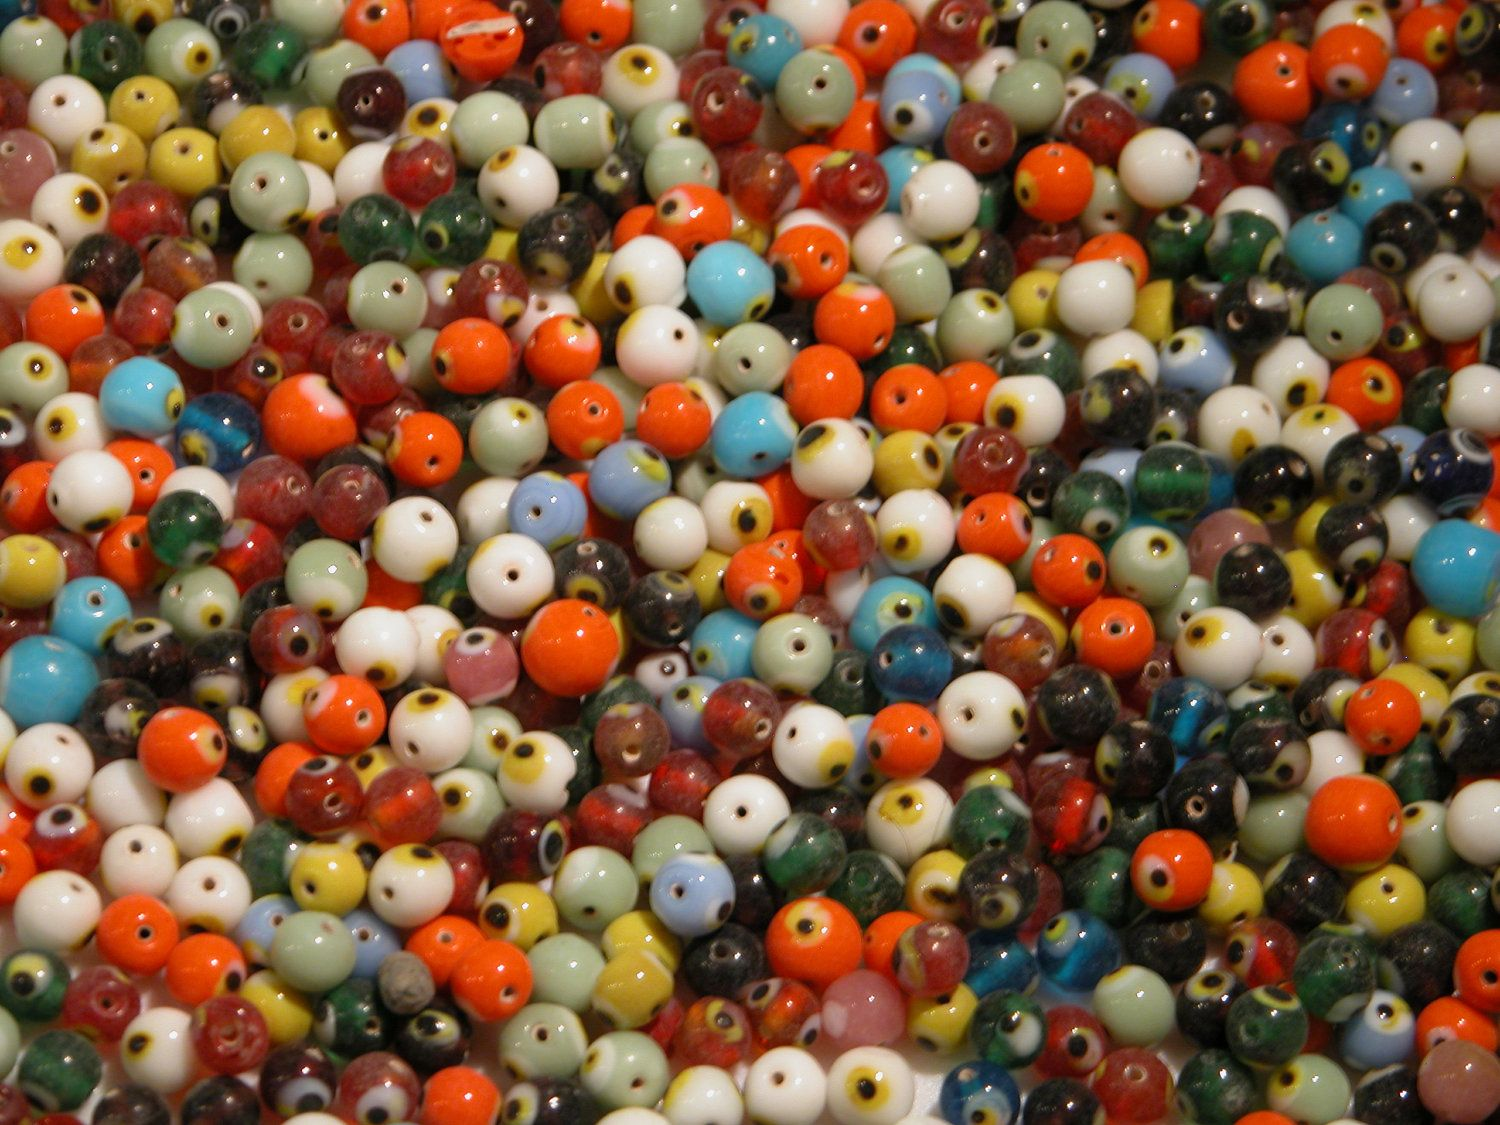 20 Evil Eye Bead Mixed Colors by SatuitTradingCo on Etsy, $2.99